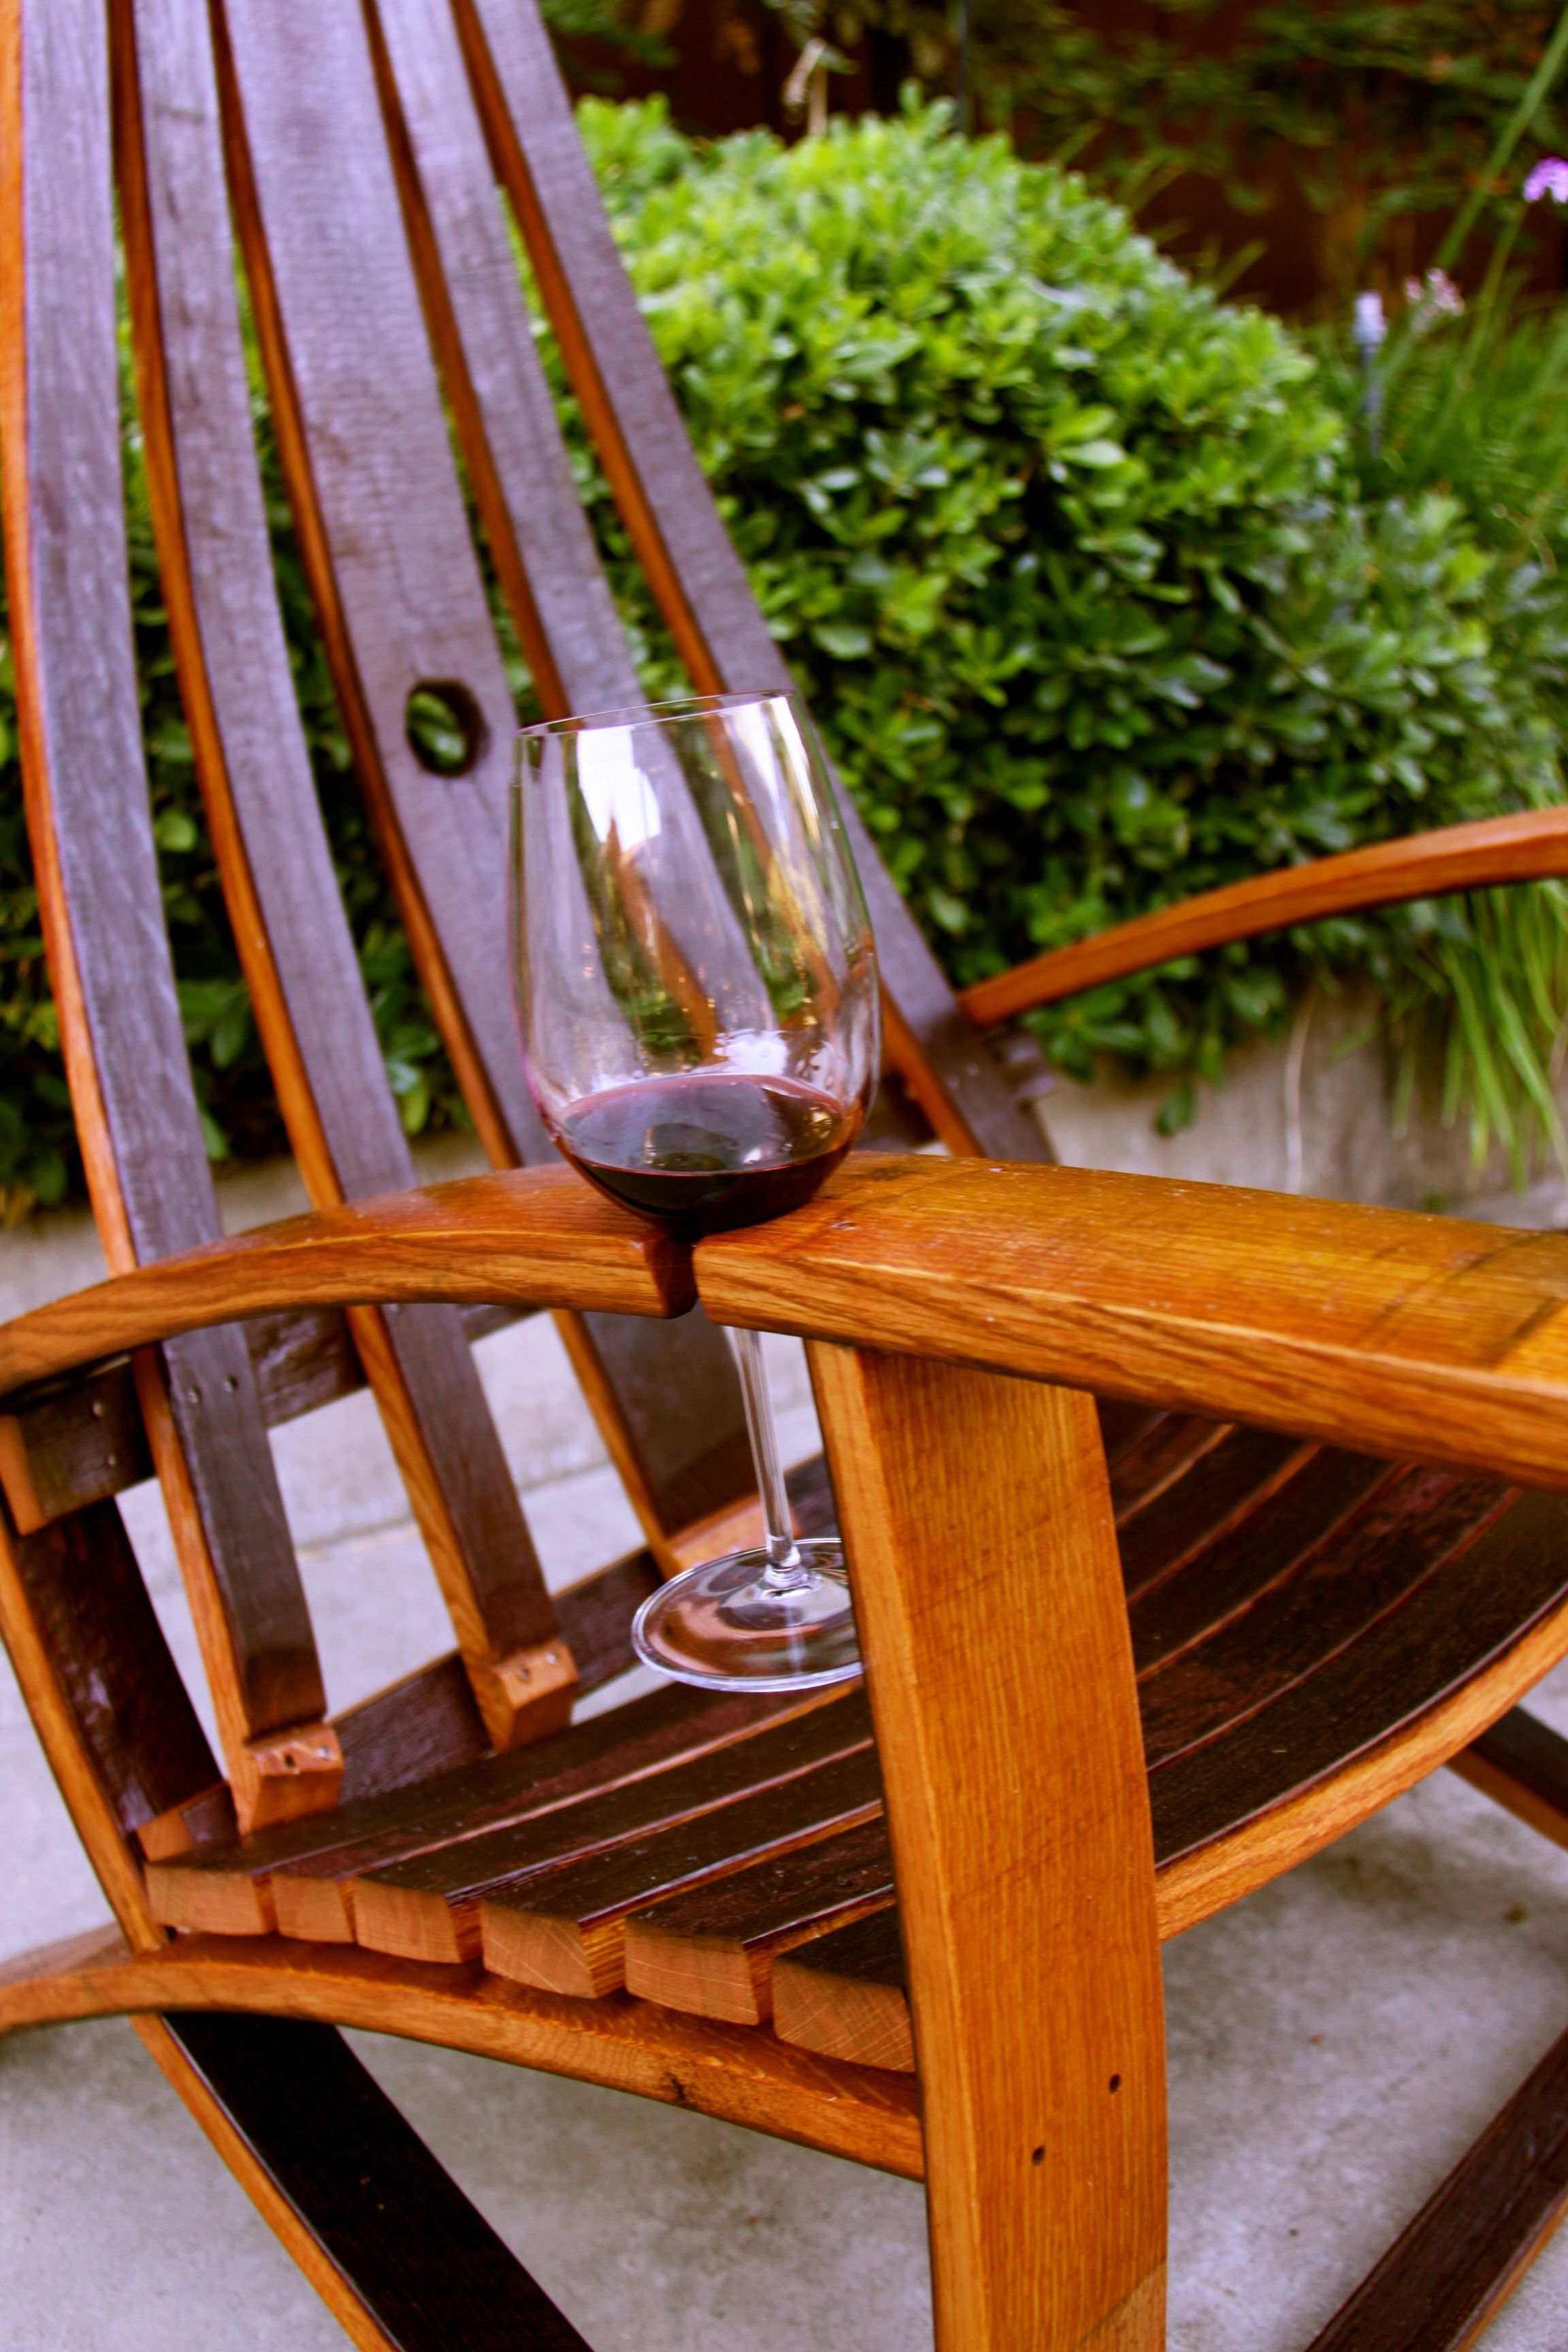 Wine Holding Chairs Definitely Need These For My Patio I Curly Have The Standard Foldable Yard So Anytime A Gl Of On